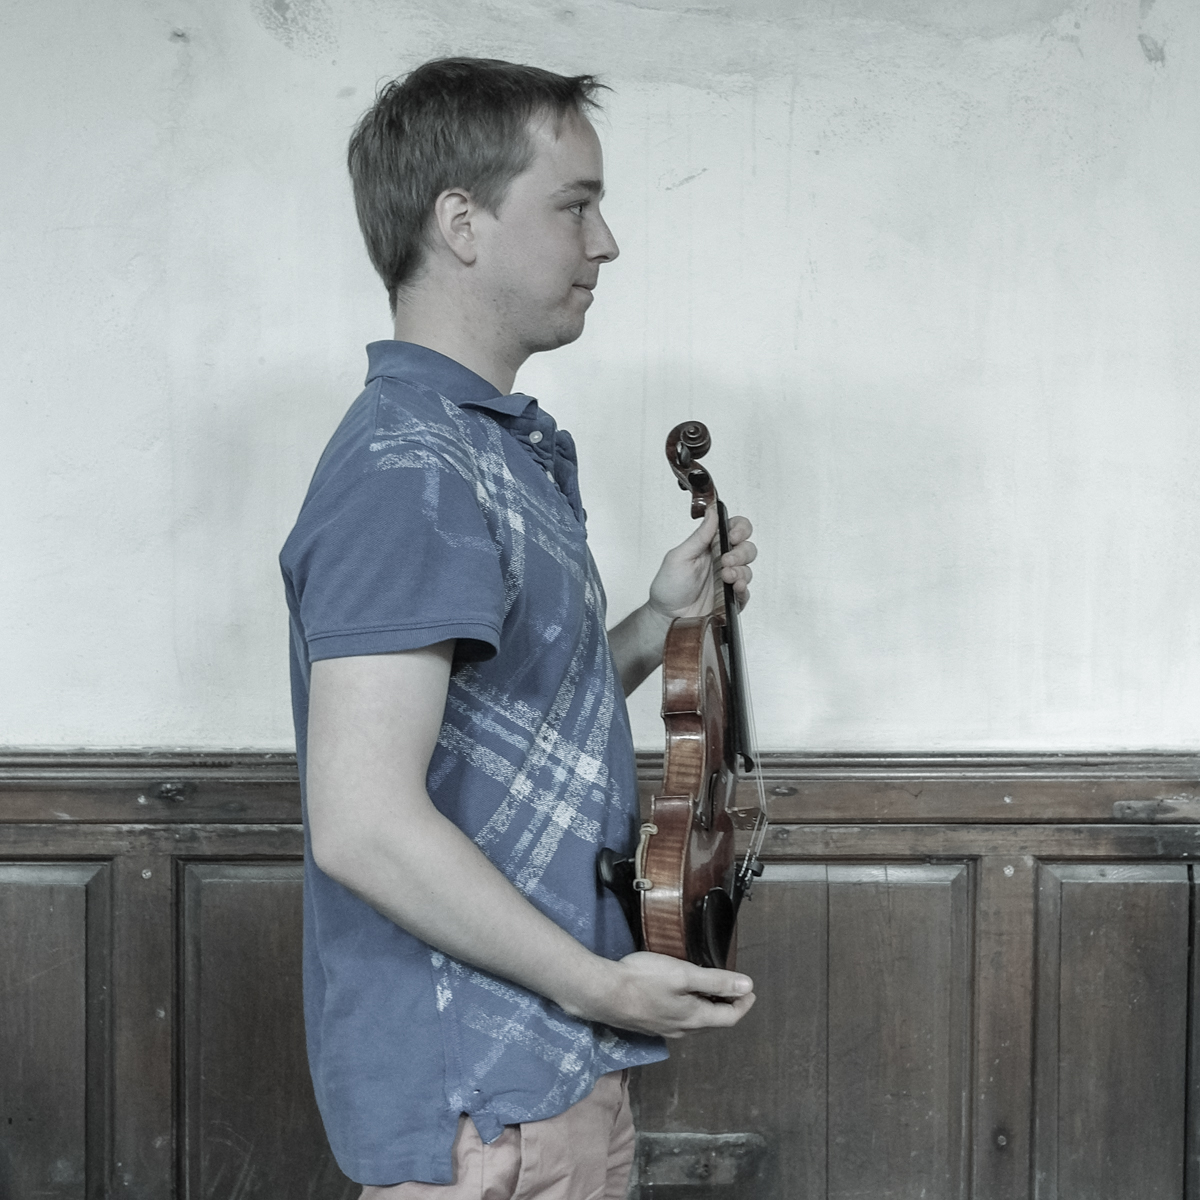 3-Thomas aldren- violin